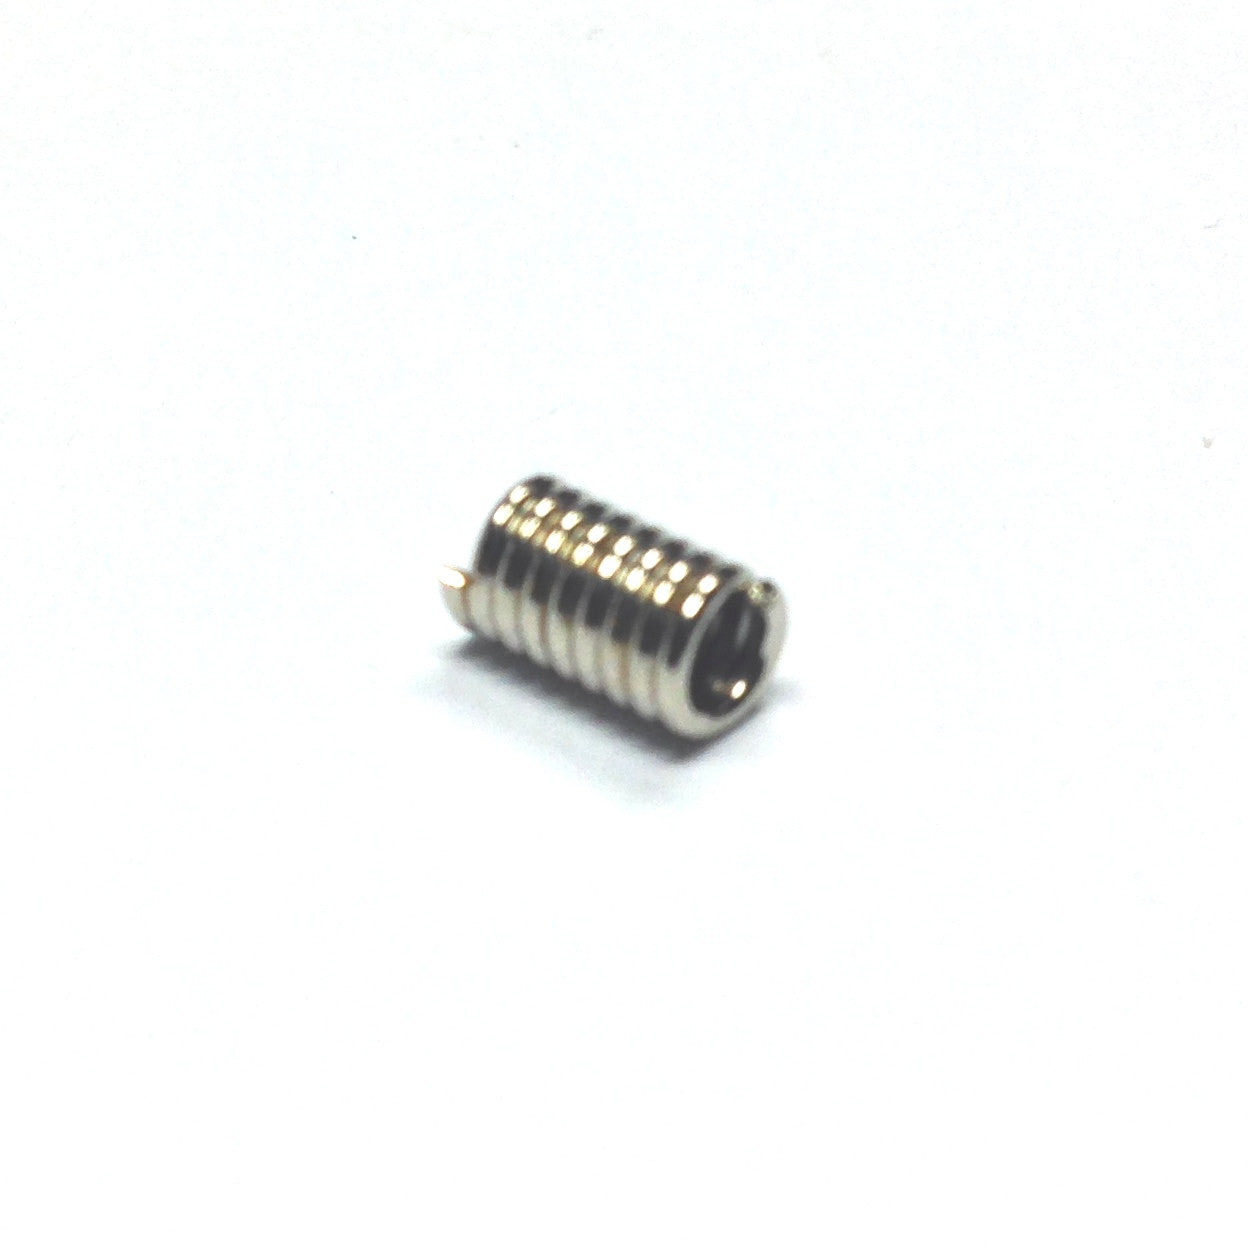 6X4MM Nickel Spring With 2MM Opening (144 pieces)